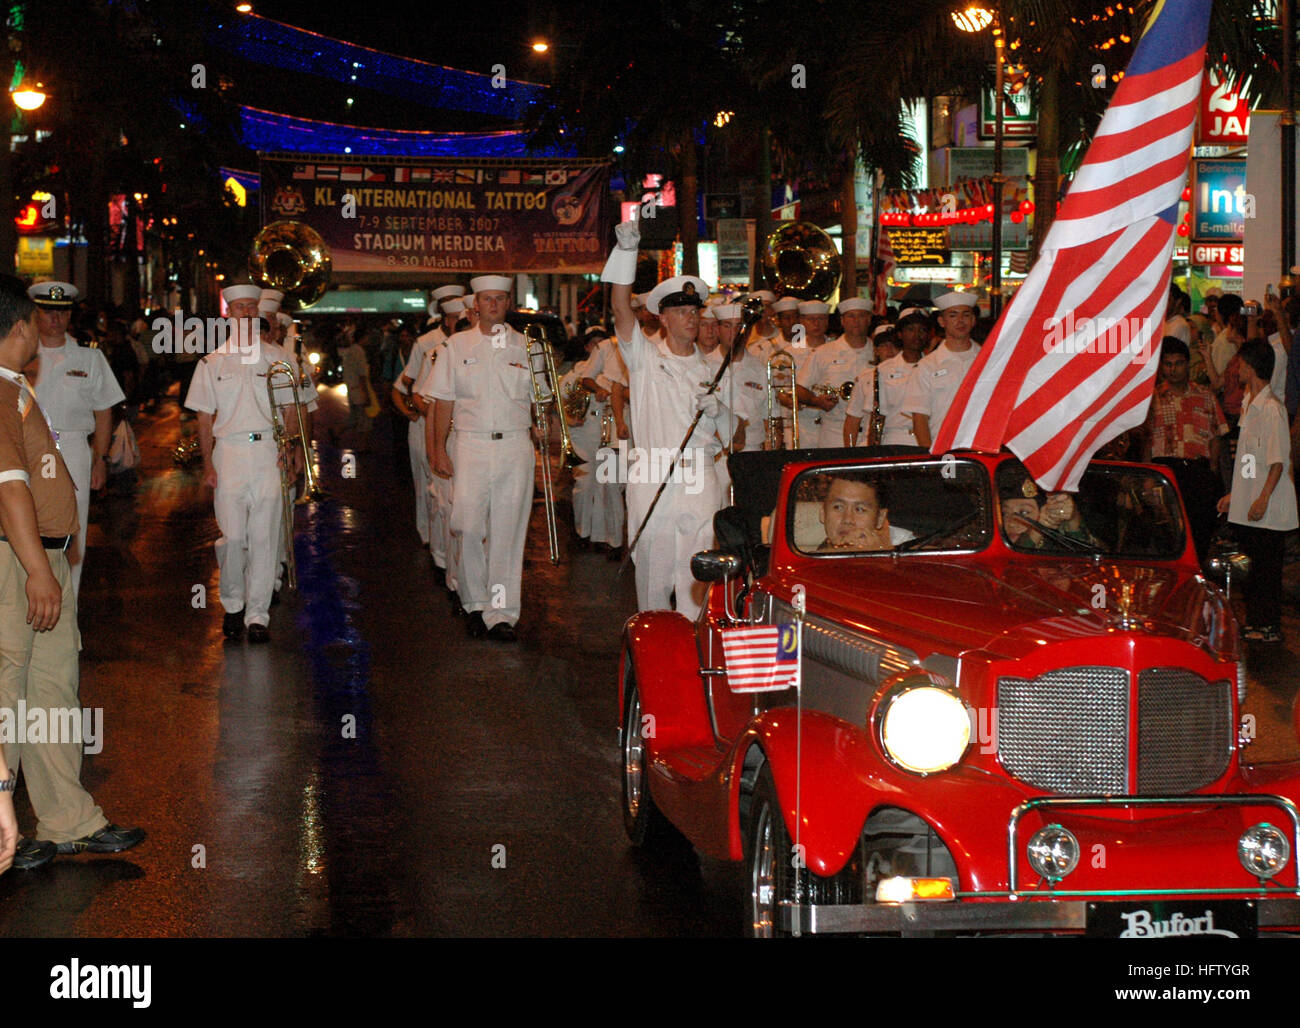 070831-N-5174T-019 KUALA LUMPUR, Malaysia (Aug. 31, 2007) - The Pacific Fleet Band performs in a parade in Kuala - Stock Image